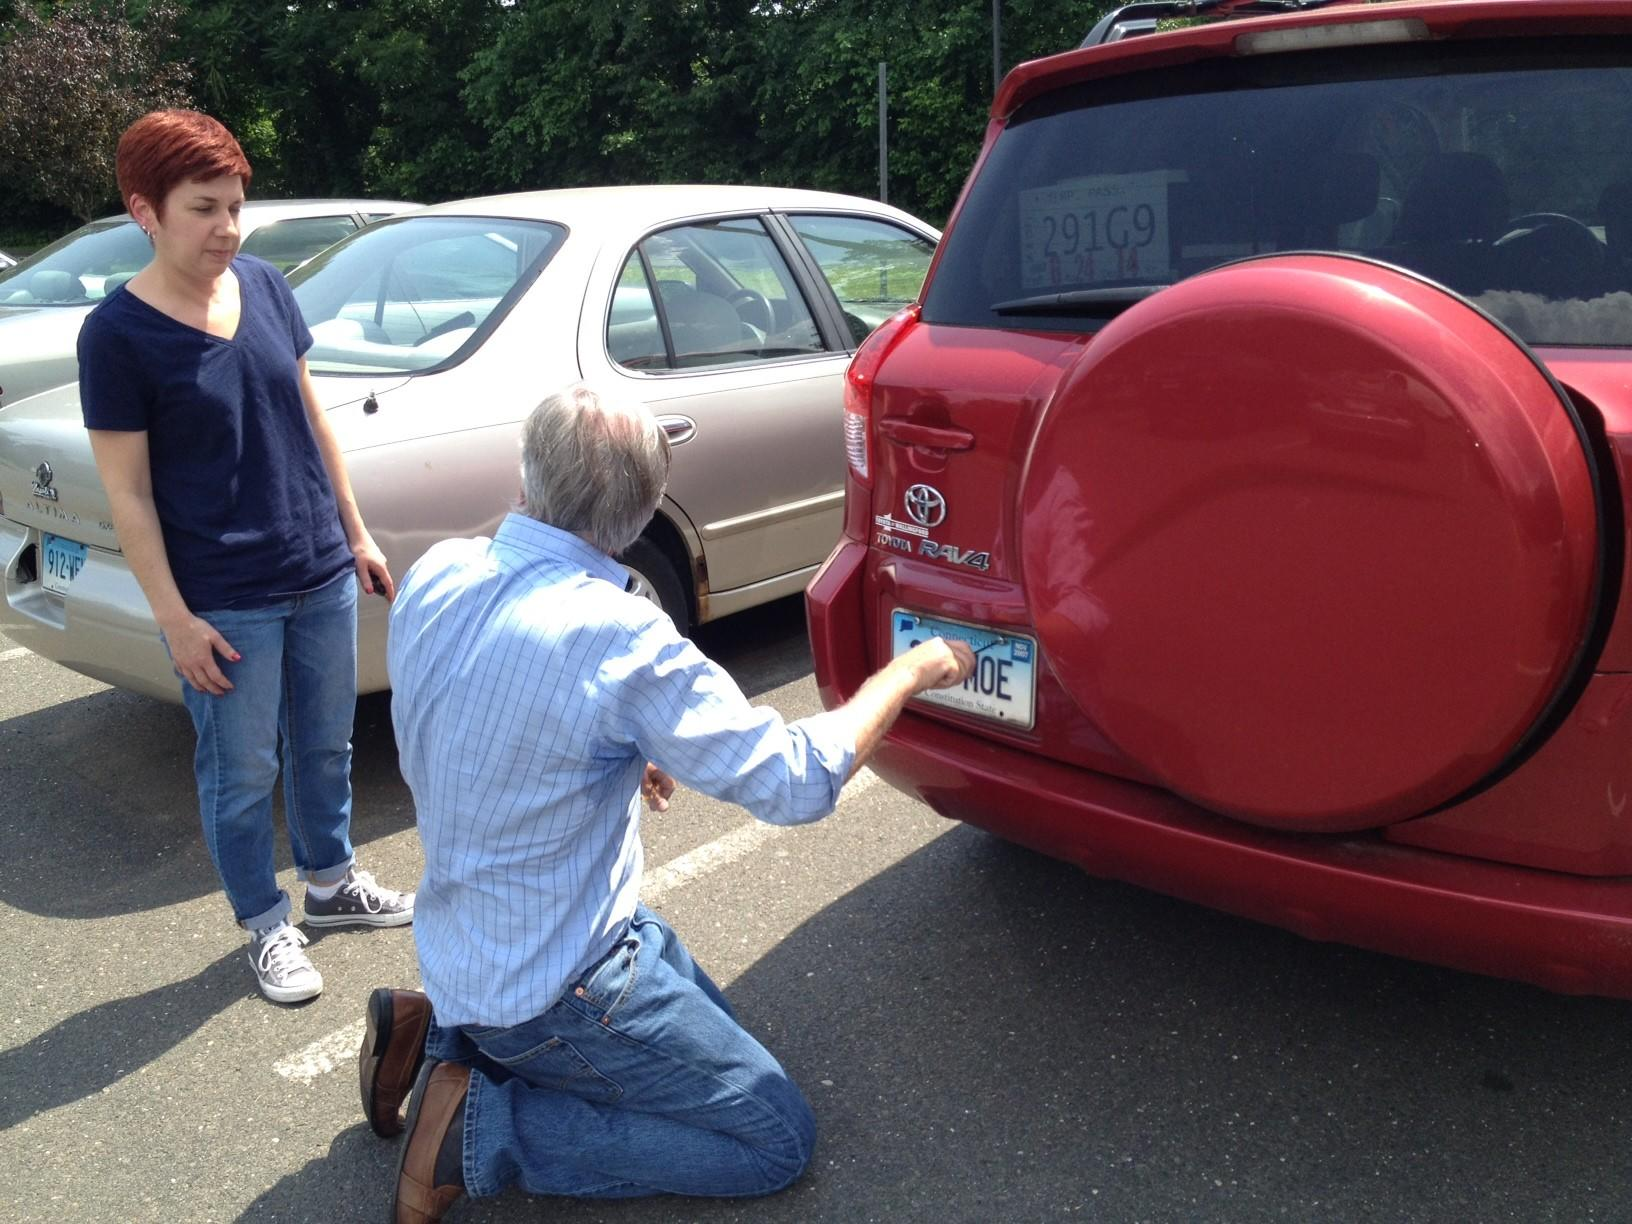 Gubernatorial candidate Tom Foley helps a woman put a license plate on her car while greeting people at the Department of Motor Vehicles in New Britain.